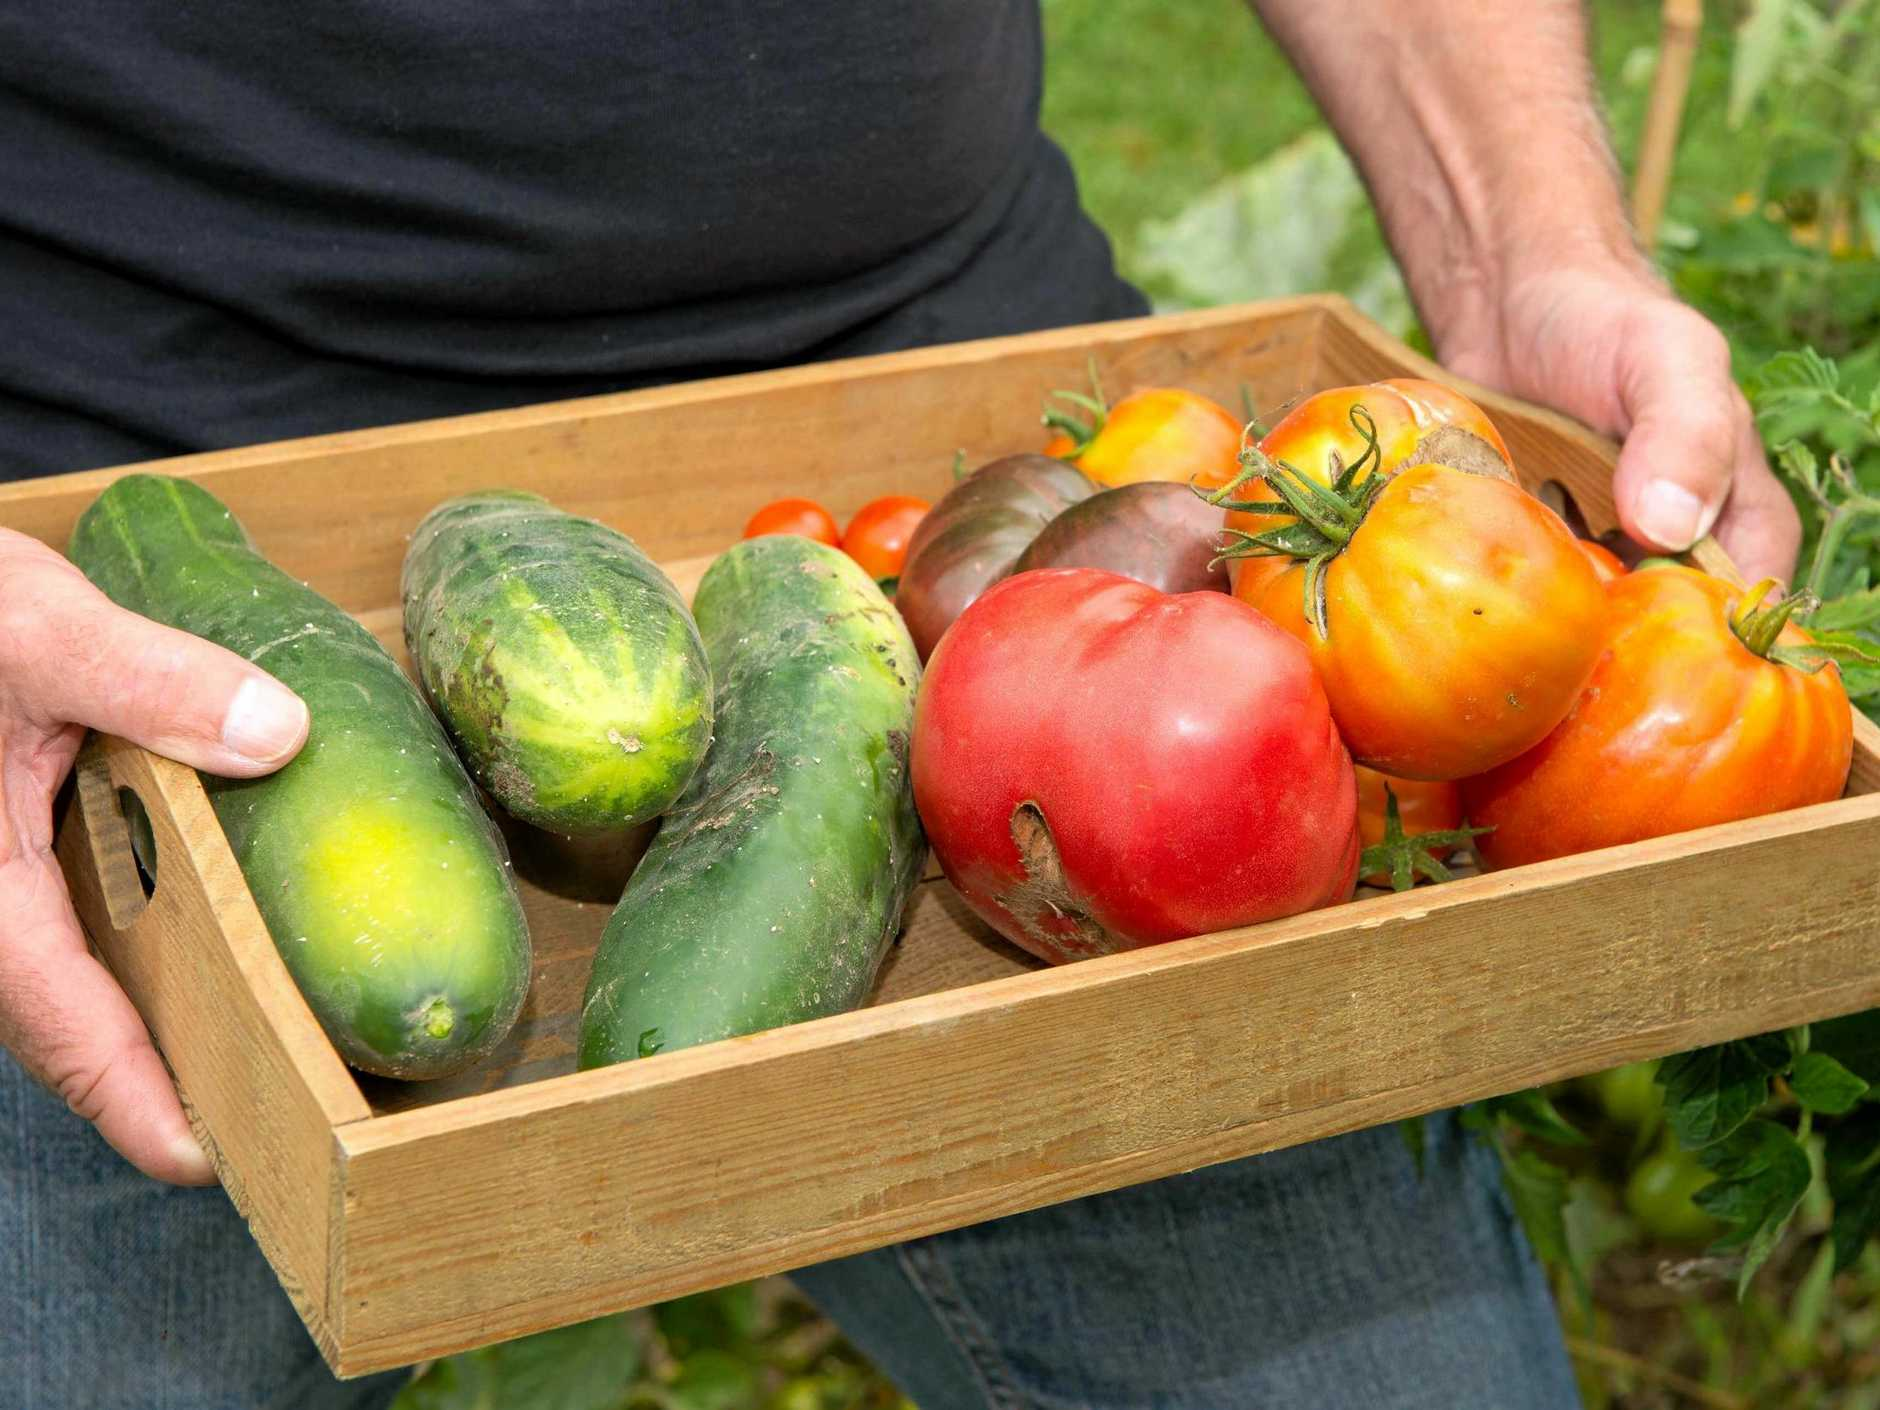 A small wooden crate with vegetables from the farmers markets.